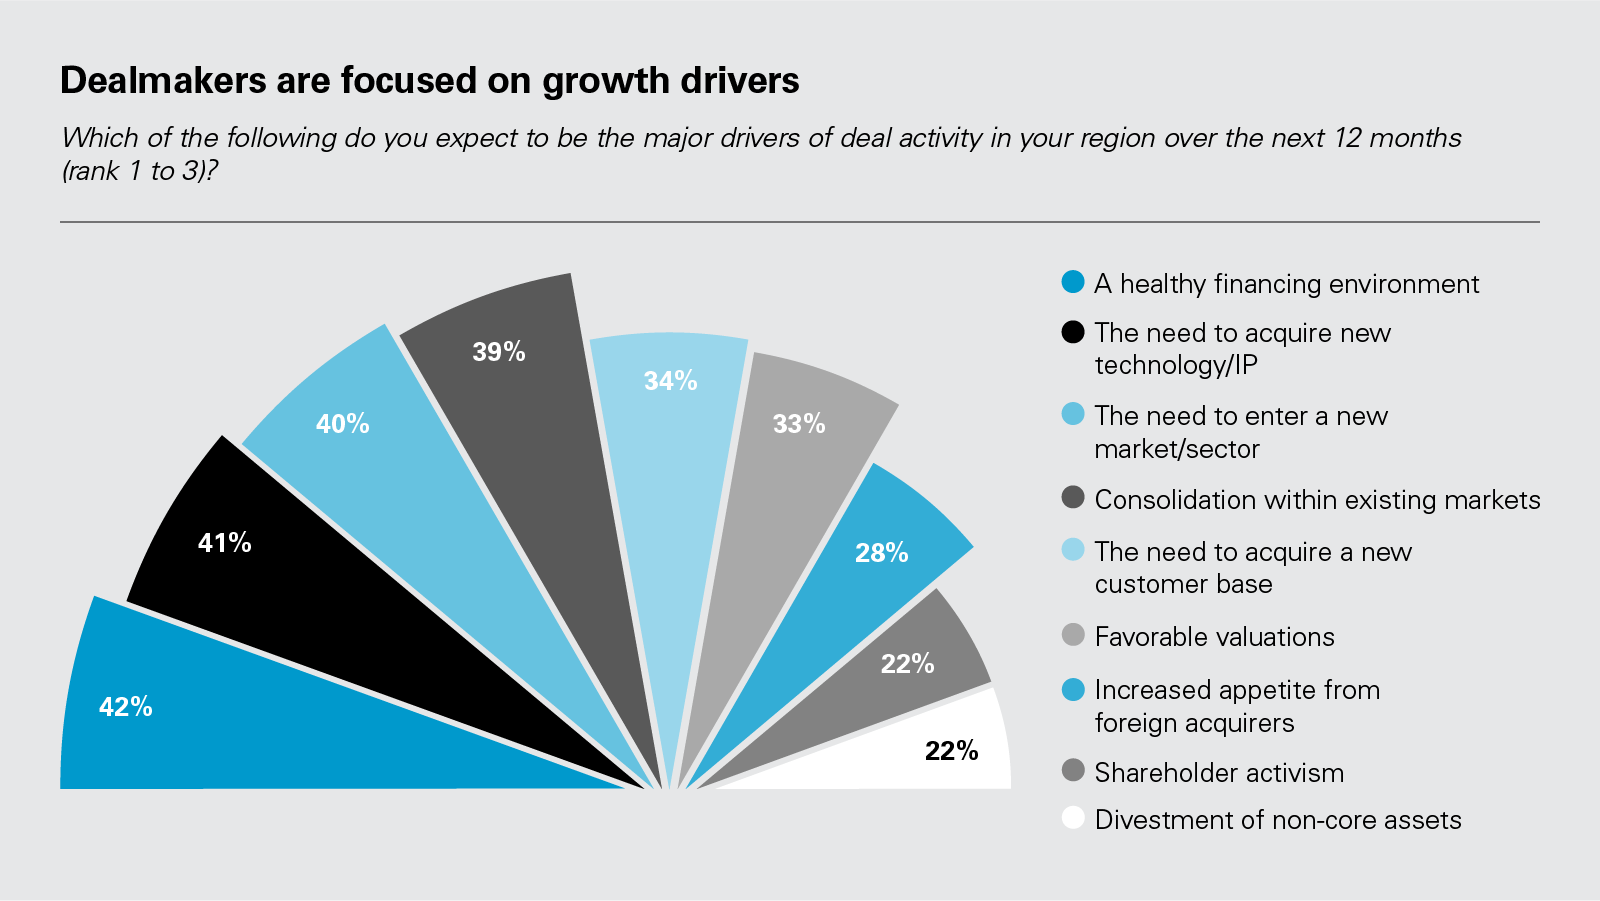 Dealmakers are focused on growth drivers